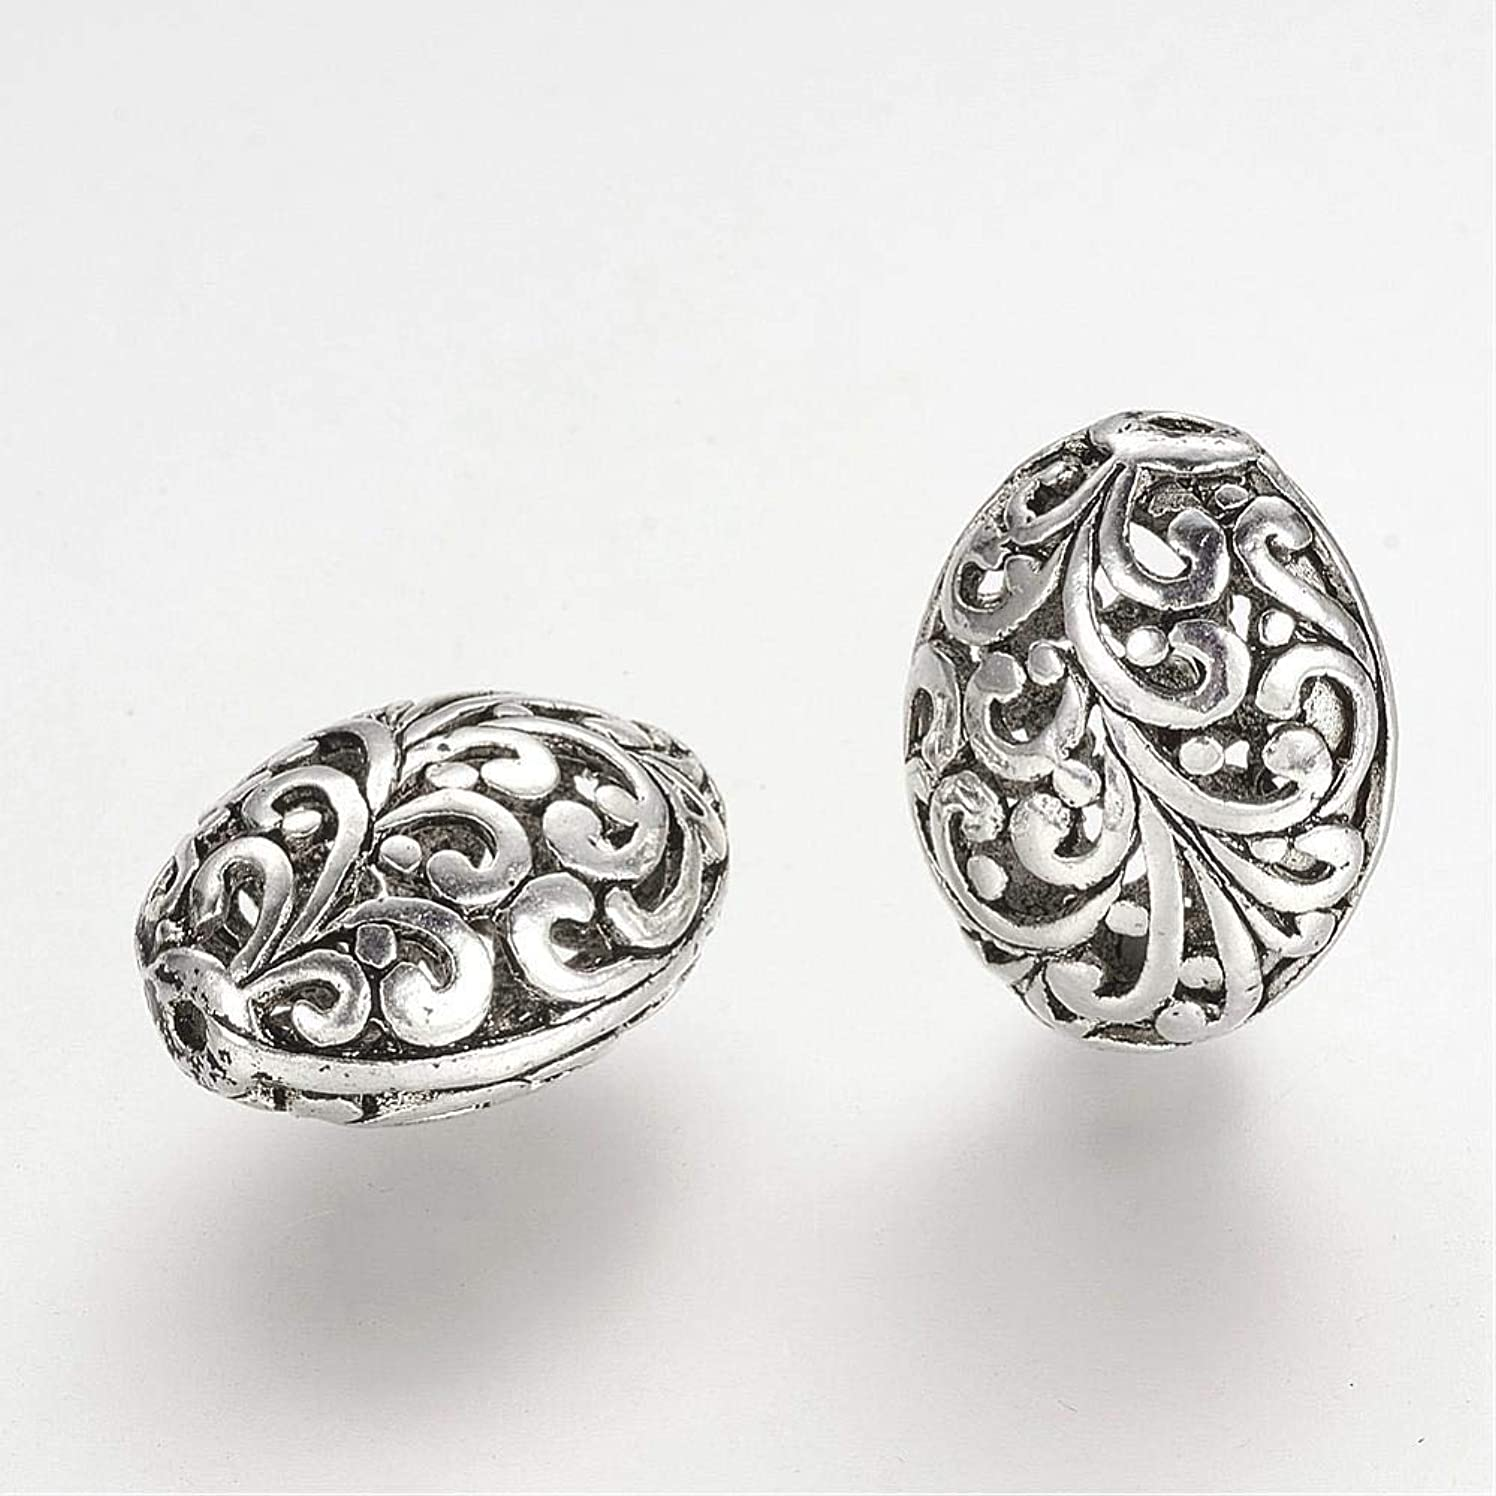 AMZ Beads - Antique Scroll Alloy Filigree Hollow Tibetan Oval Jewelry Making Craft Beads - 10 pcs (Silver)